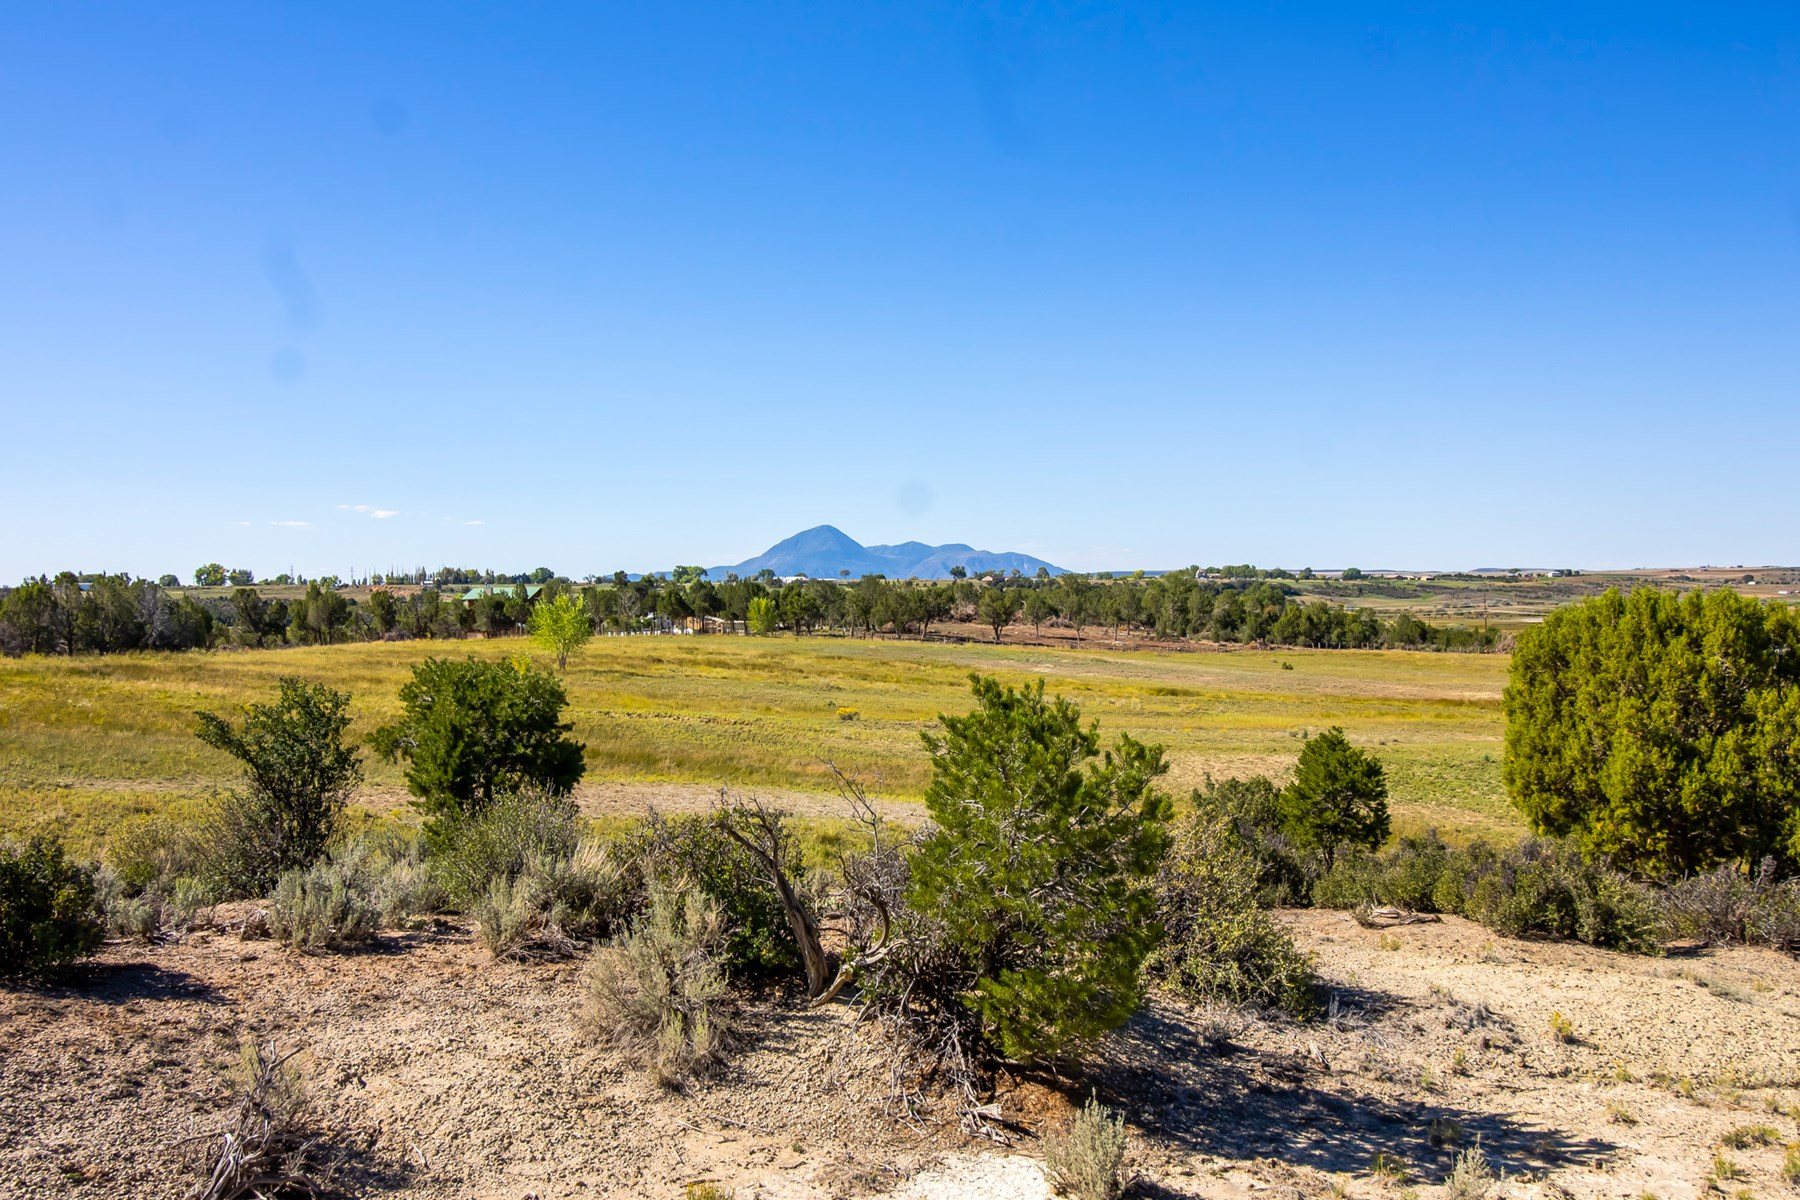 69 Acres of Irrigated Farmland For Sale in Lewis, CO!